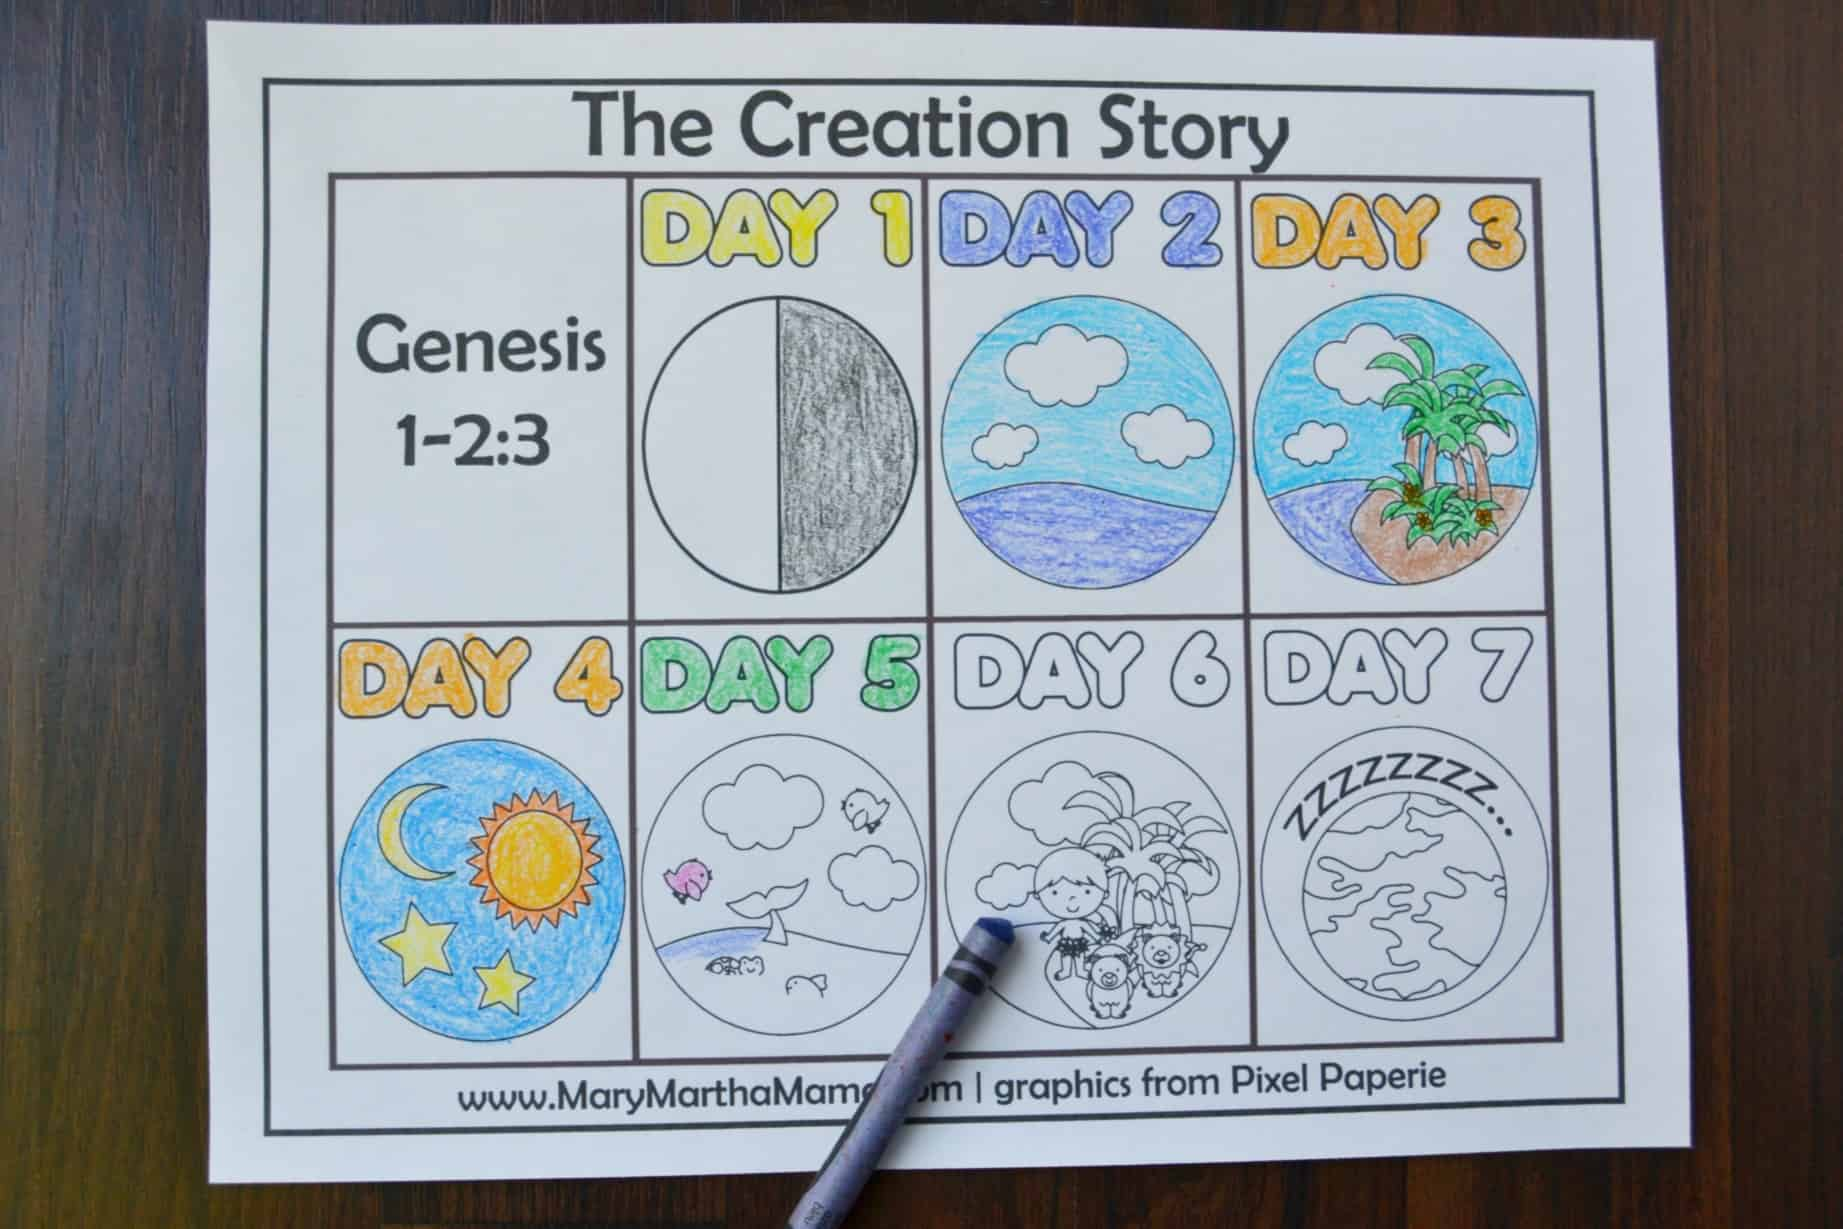 These fun creation coloring pages help preschool and early elementary children to learn the creation story from the Bible.